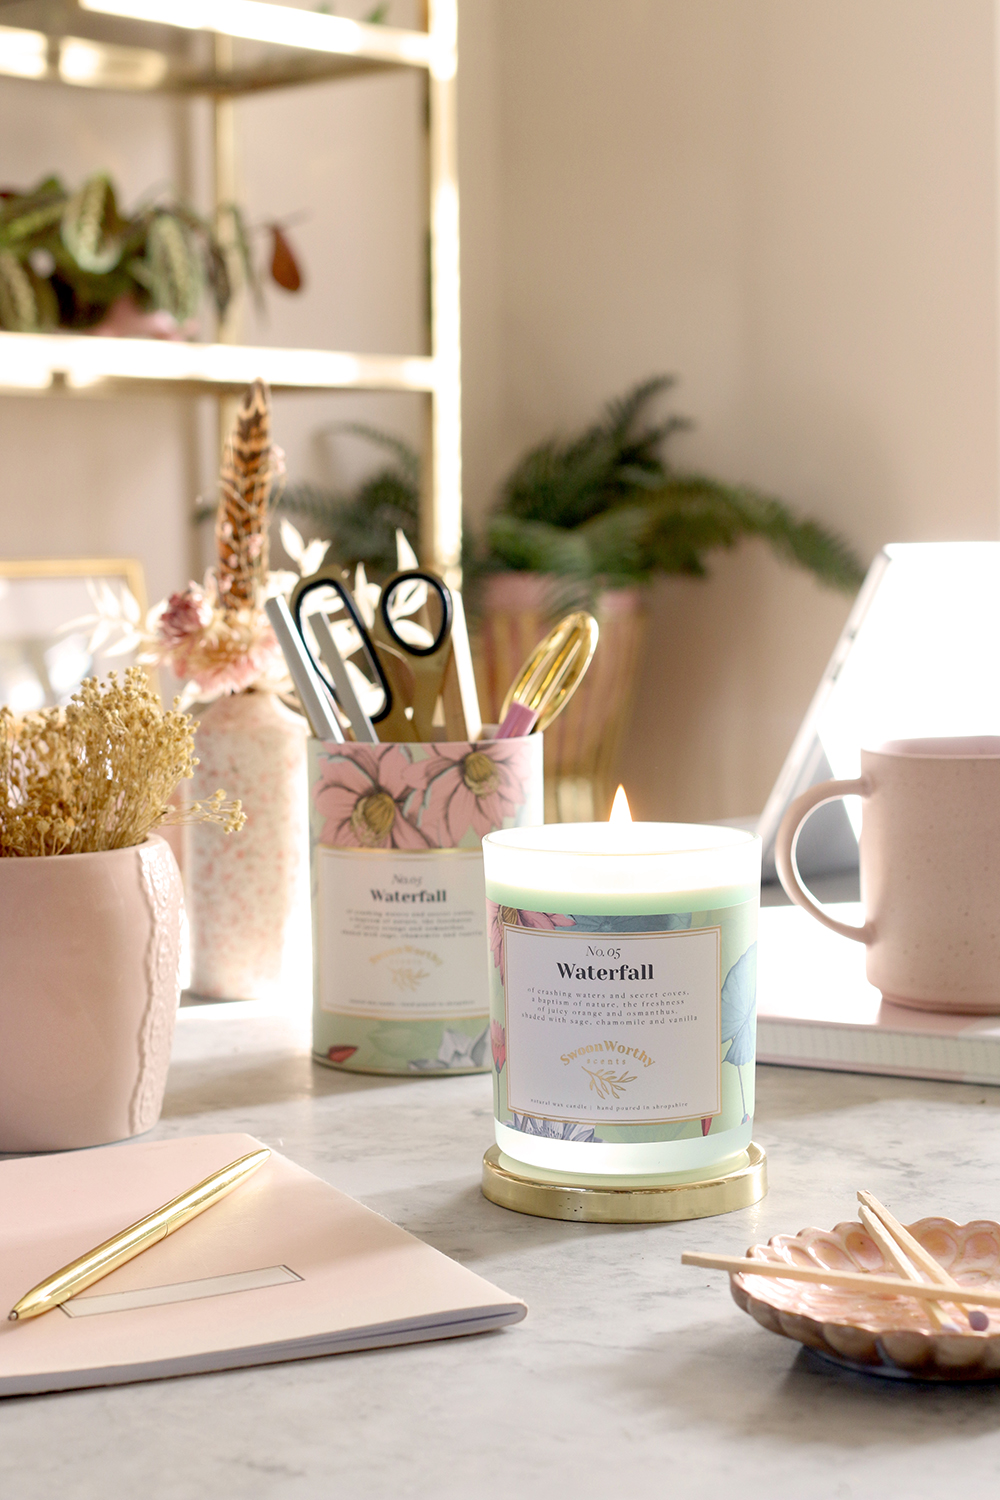 No 05 Waterfall Candle 35GBP (4)